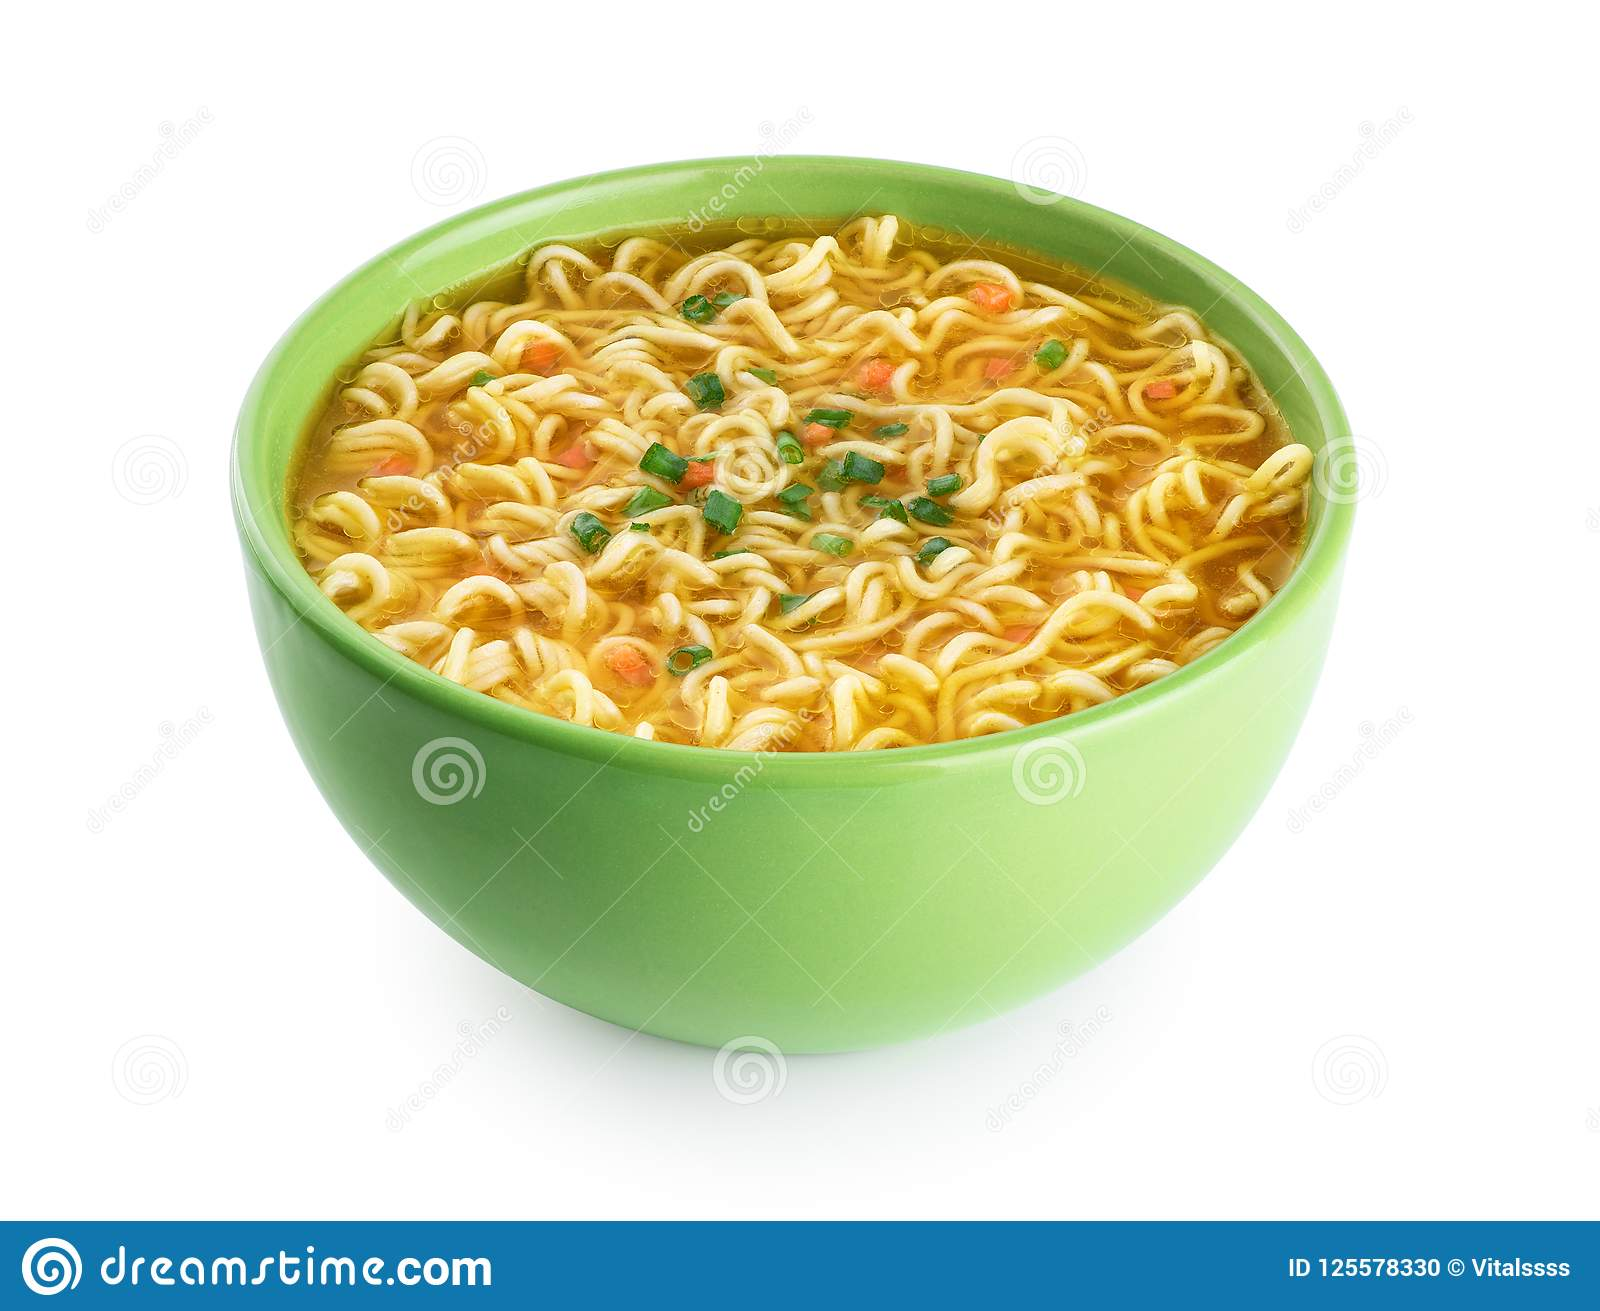 Quick Chicken Noodle Soup Bowl Of Instant Noodles Stock Photo Image Of Traditional Unhealthy 125578330